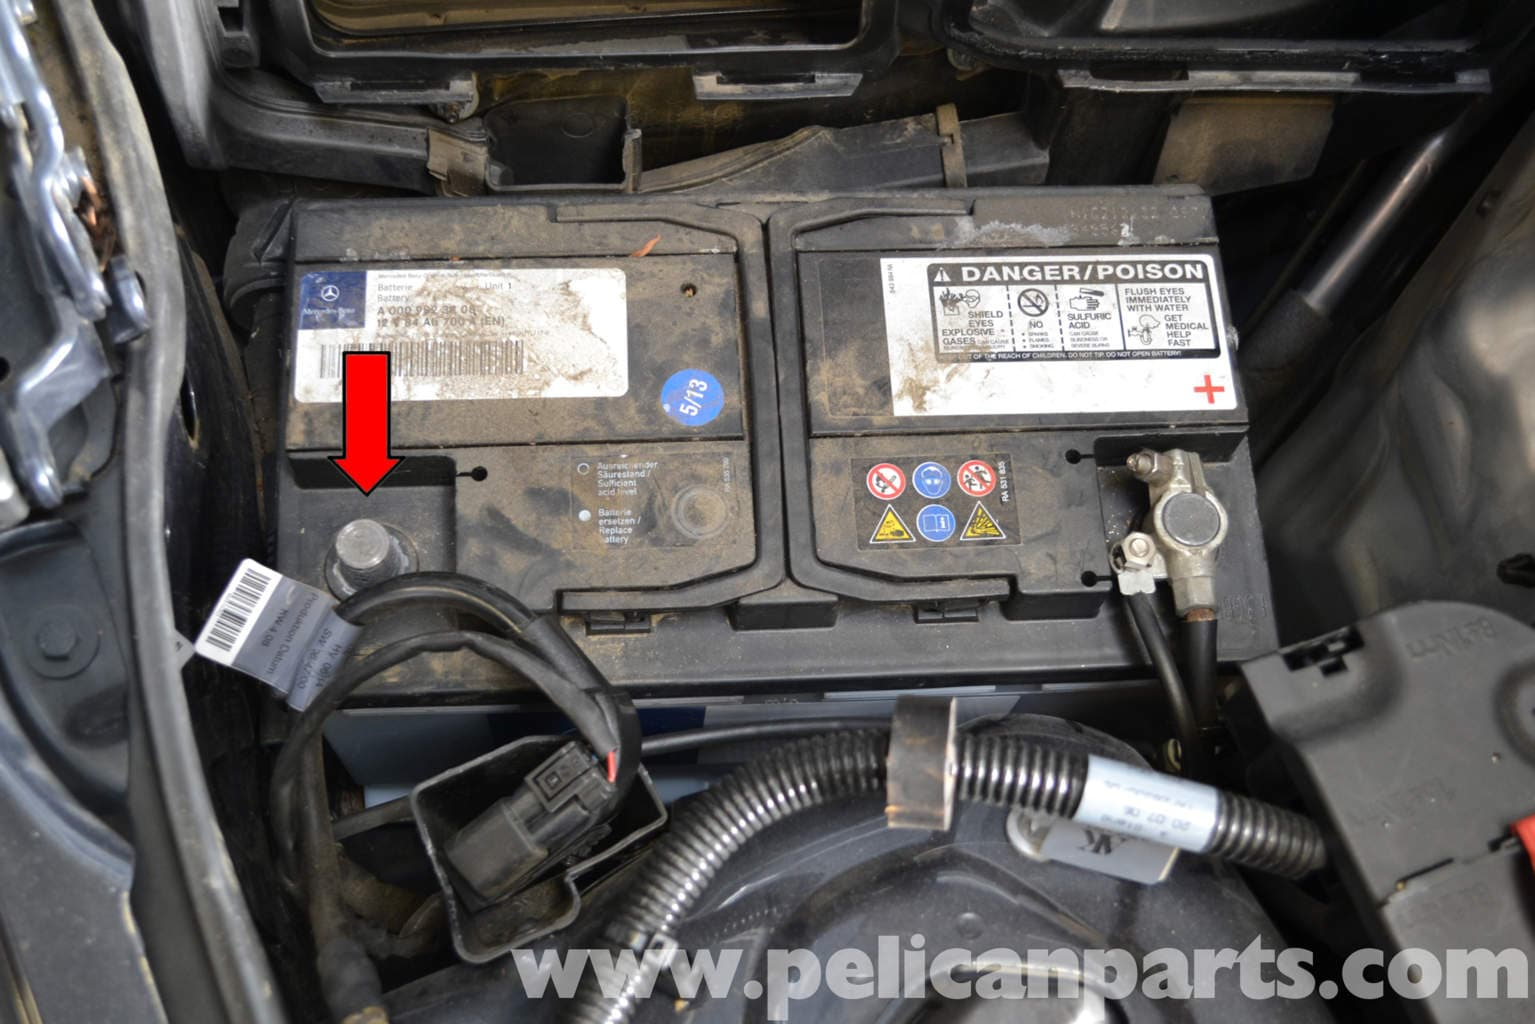 2013 Mercedes Benz C250 Coupe Fuse Box Diagram Mercedes Benz W204 Electronic Steering Lock Replacement